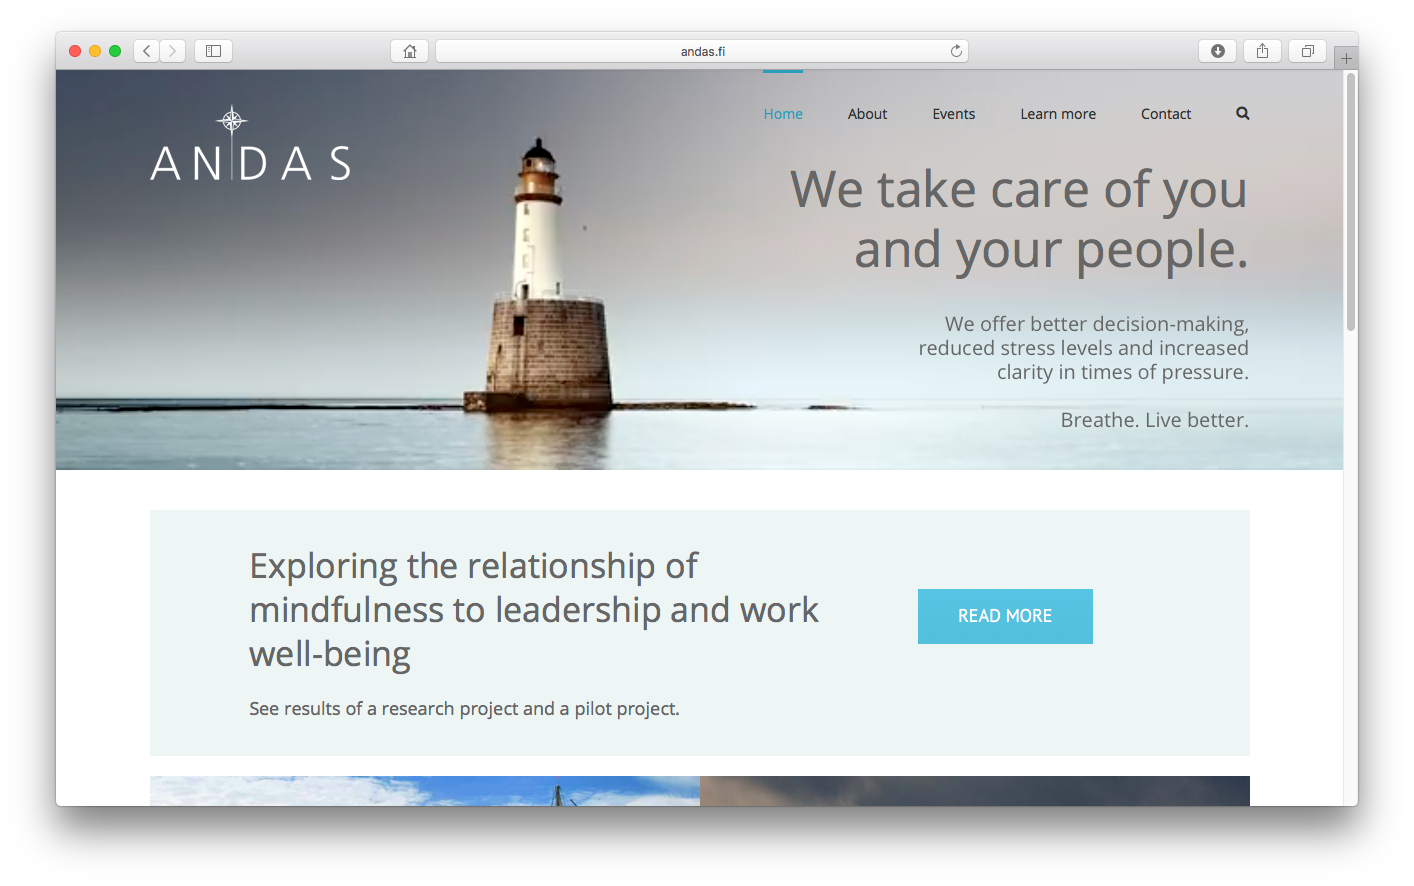 Andas – A controlled and profitable business extension was explored and launched with help of social network analysis